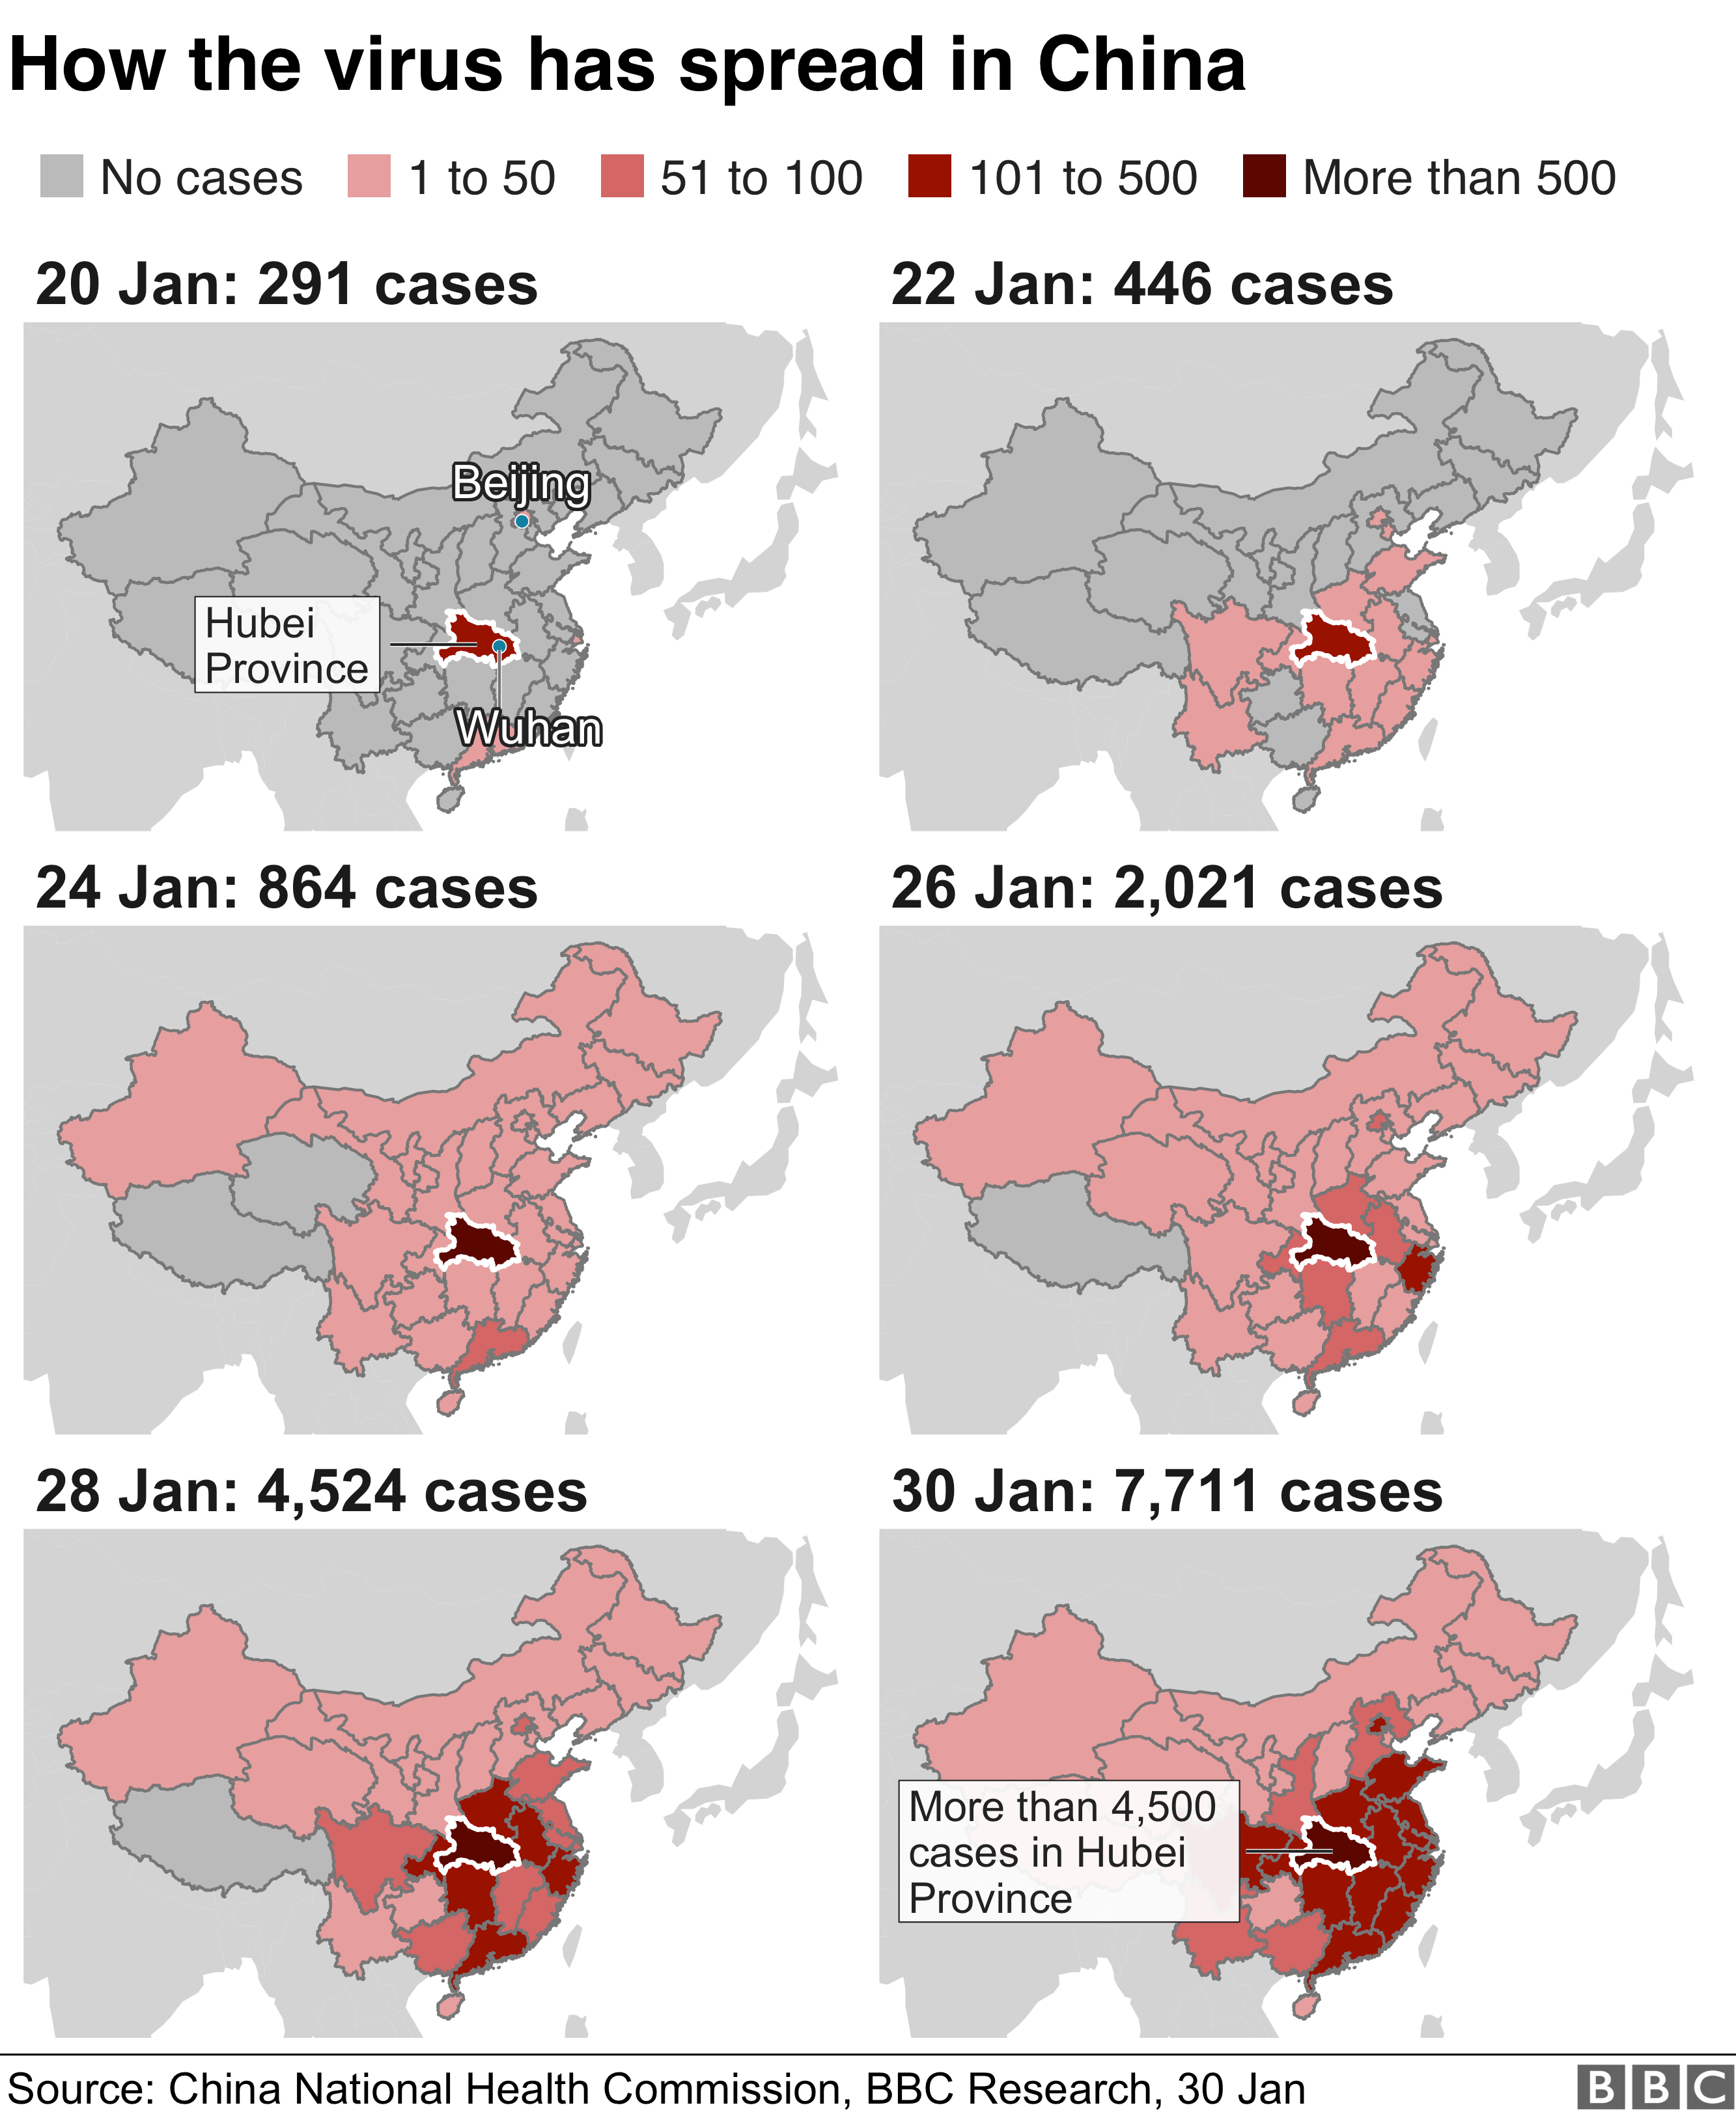 Maps showing the rise in the number of coronavirus virus cases in China